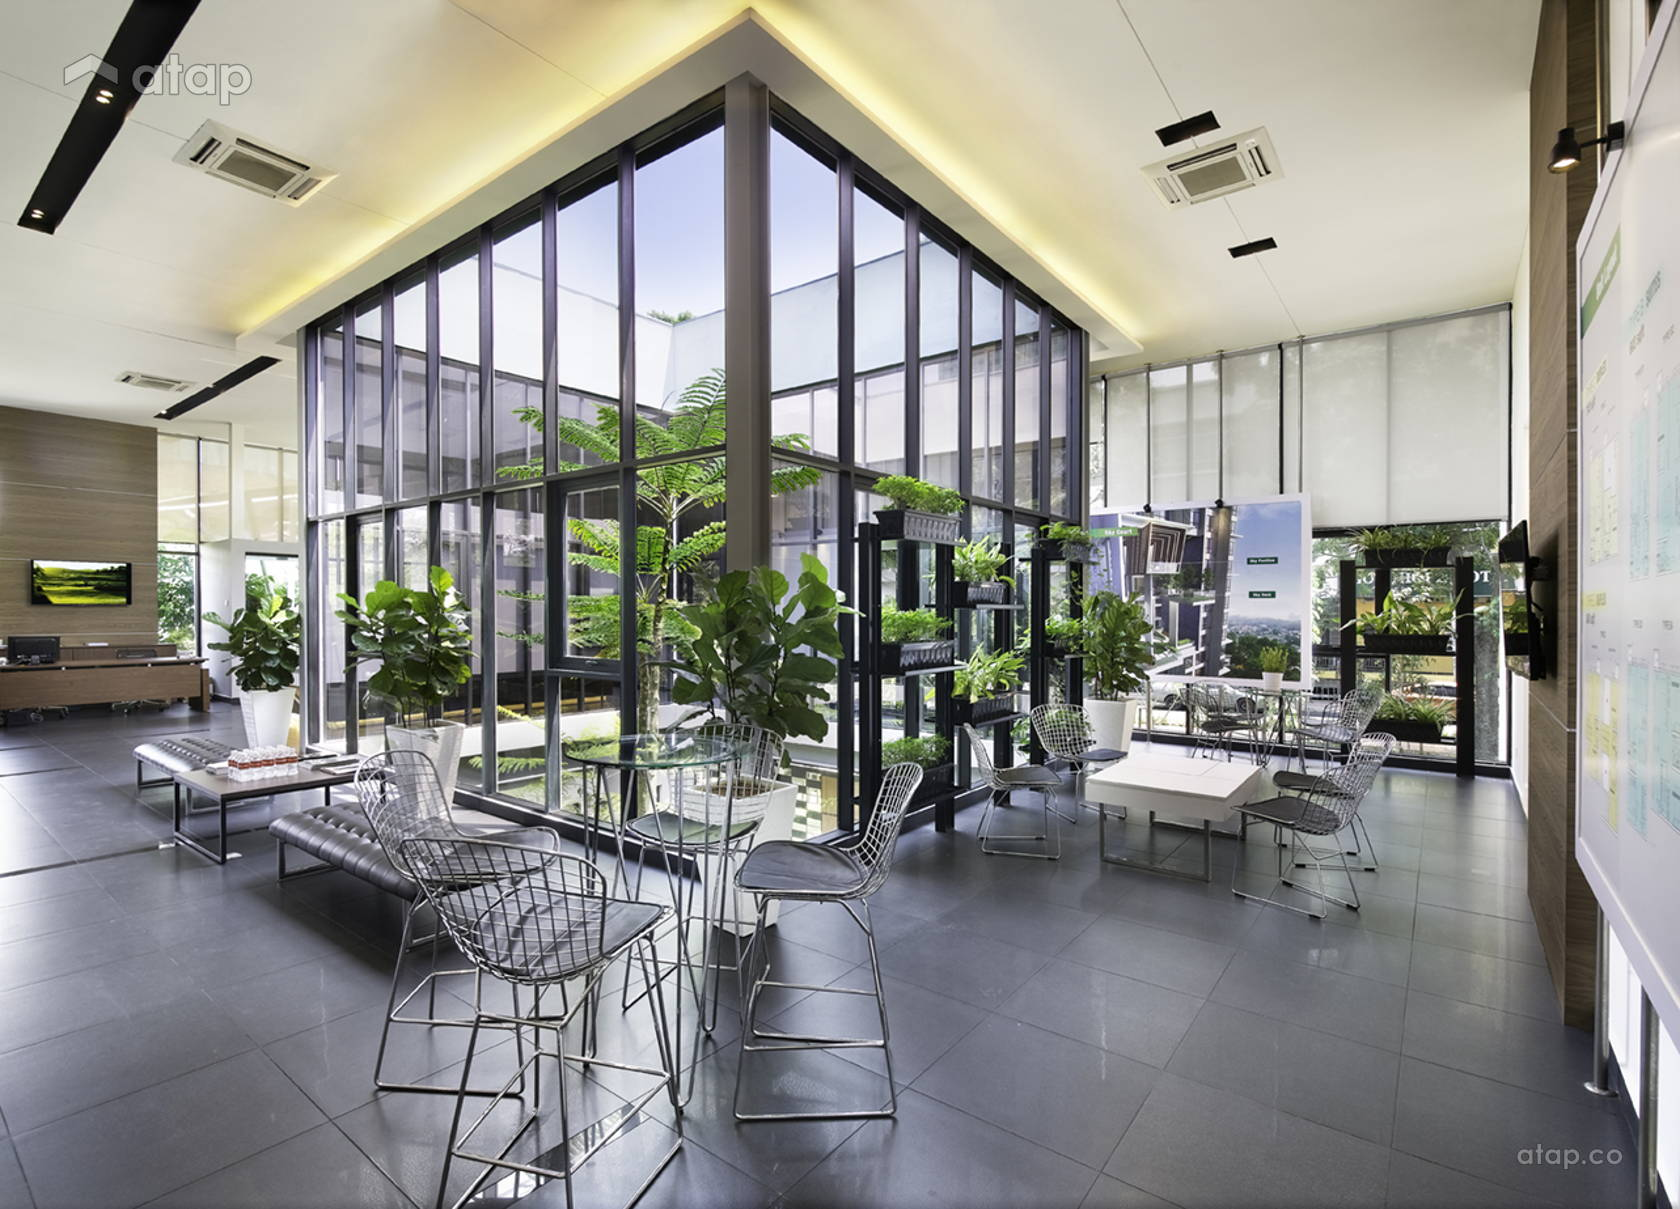 Contemporary Office @ High Park Residences - Show gallery and type C (duplex unit)